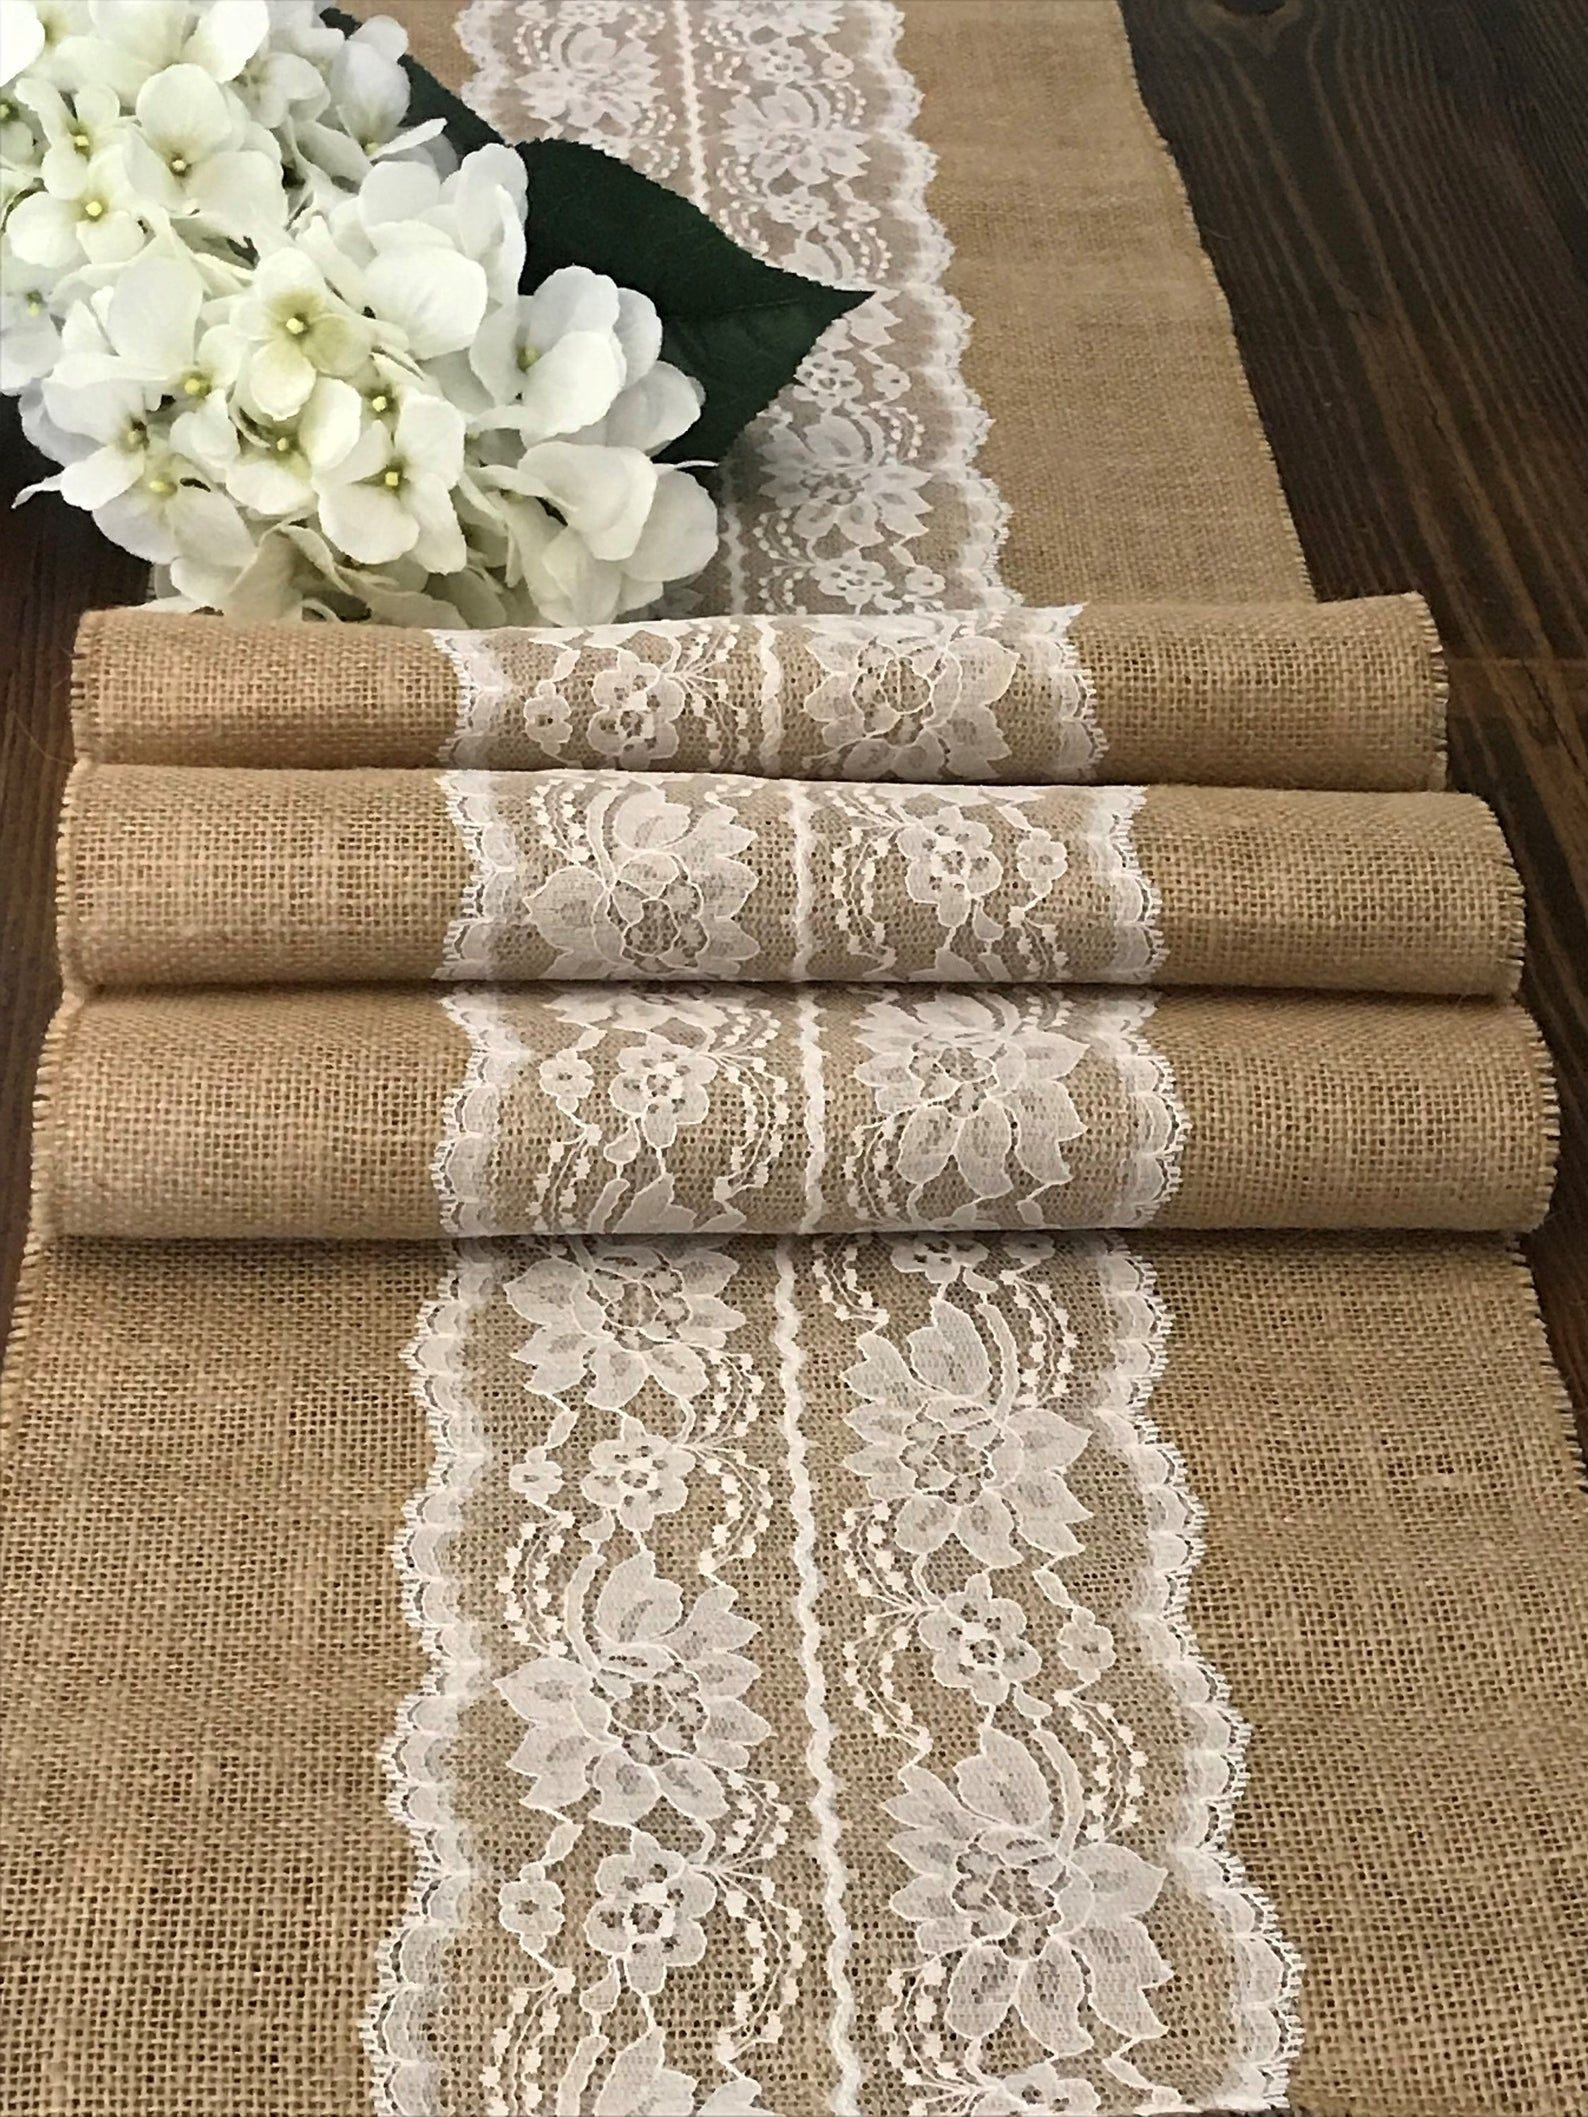 Burlap Table Runner with Ivory or White Lace Center